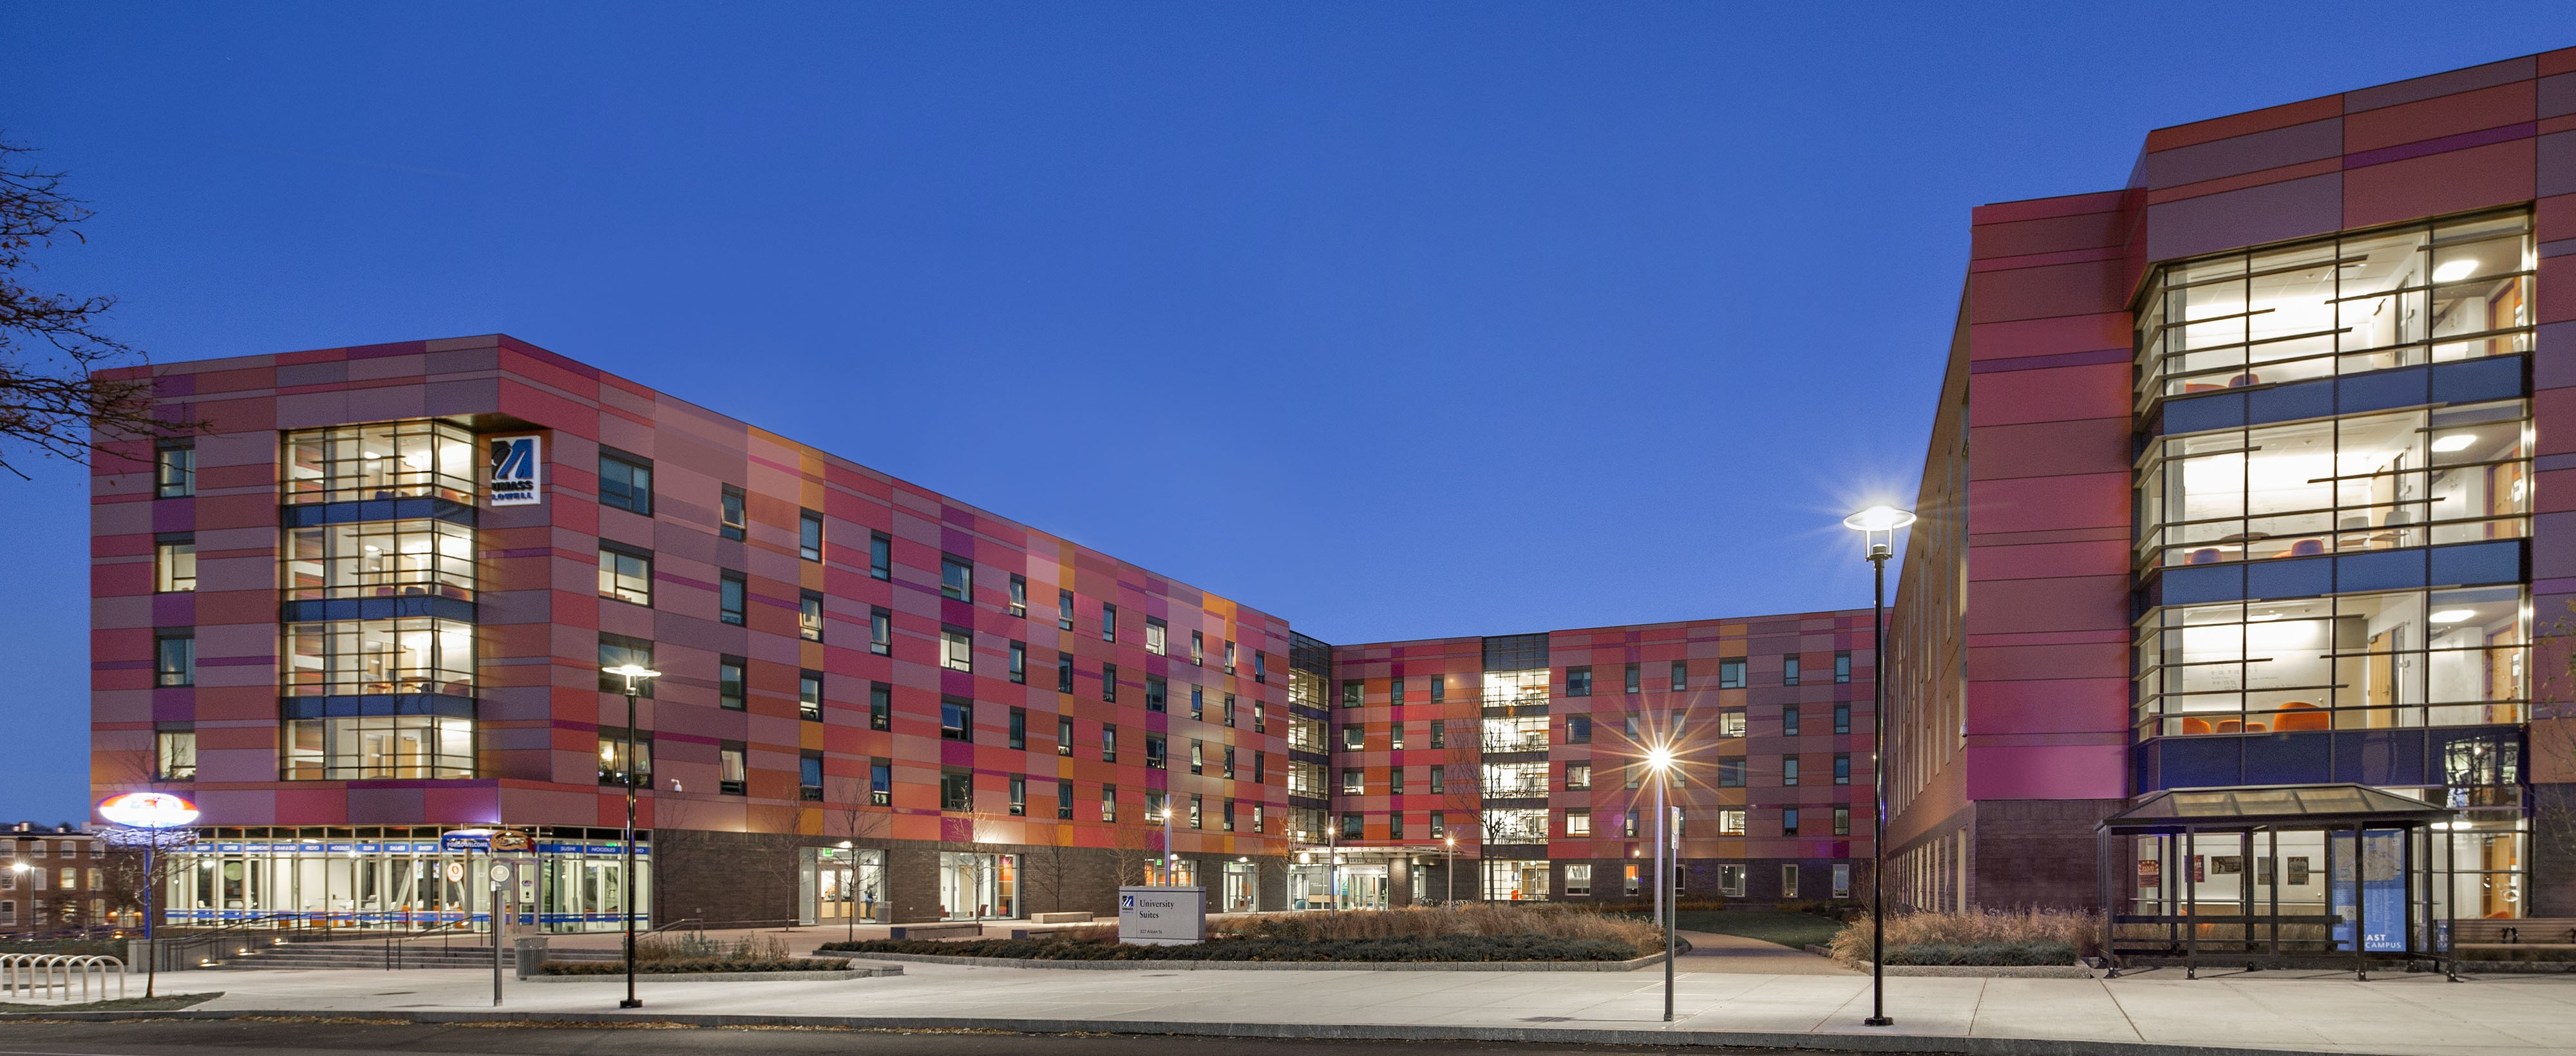 UMass Lowell University Suites